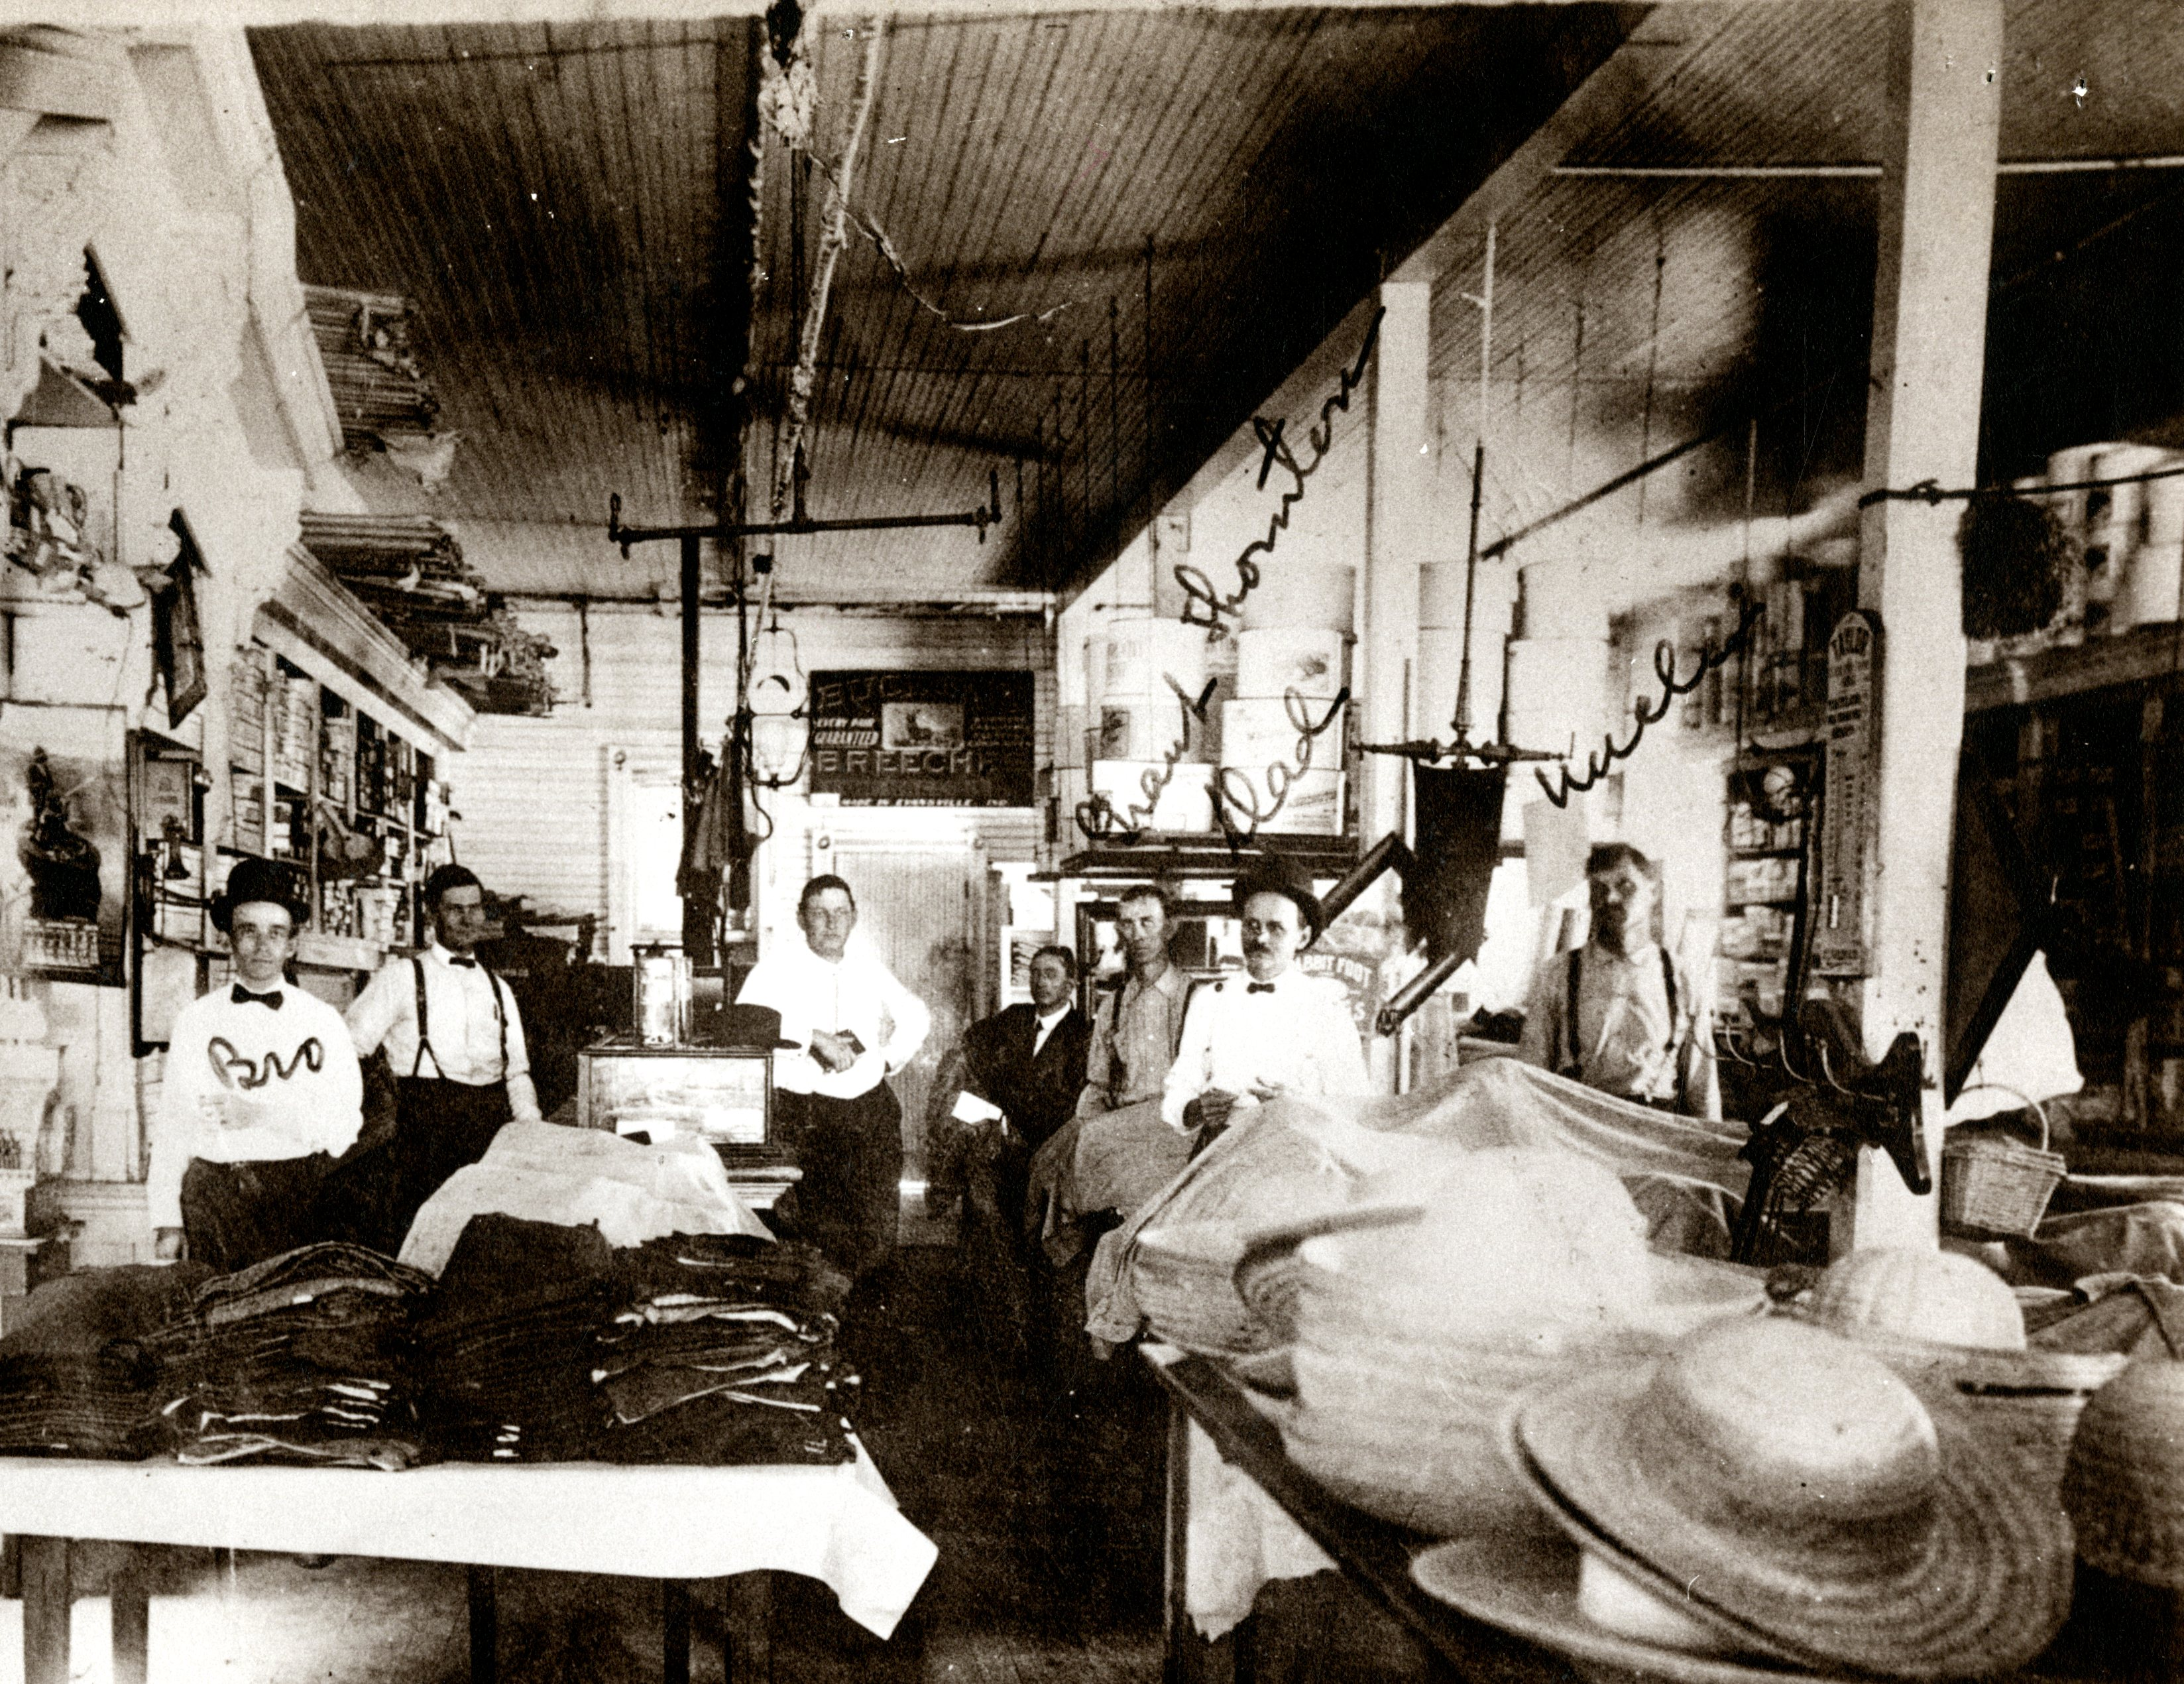 S.S. Coachman's General Store, Clearwater, Florida, 1902.